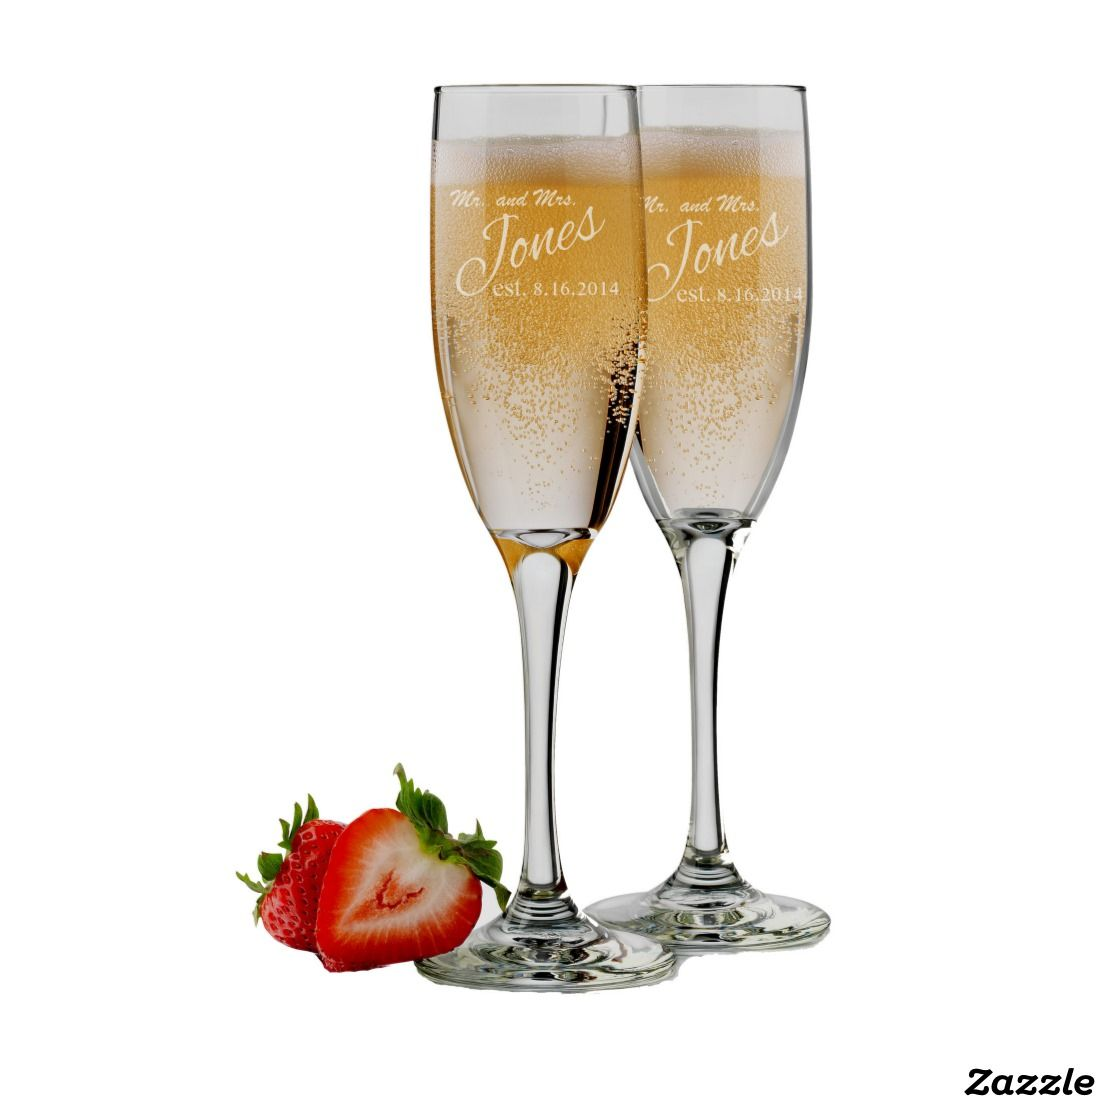 Wedding Toasting Glasses Mr and Mrs Personalized Champagne Flutes Set of 2 Engraved Toasting Glasses Custom Champagne Glasses